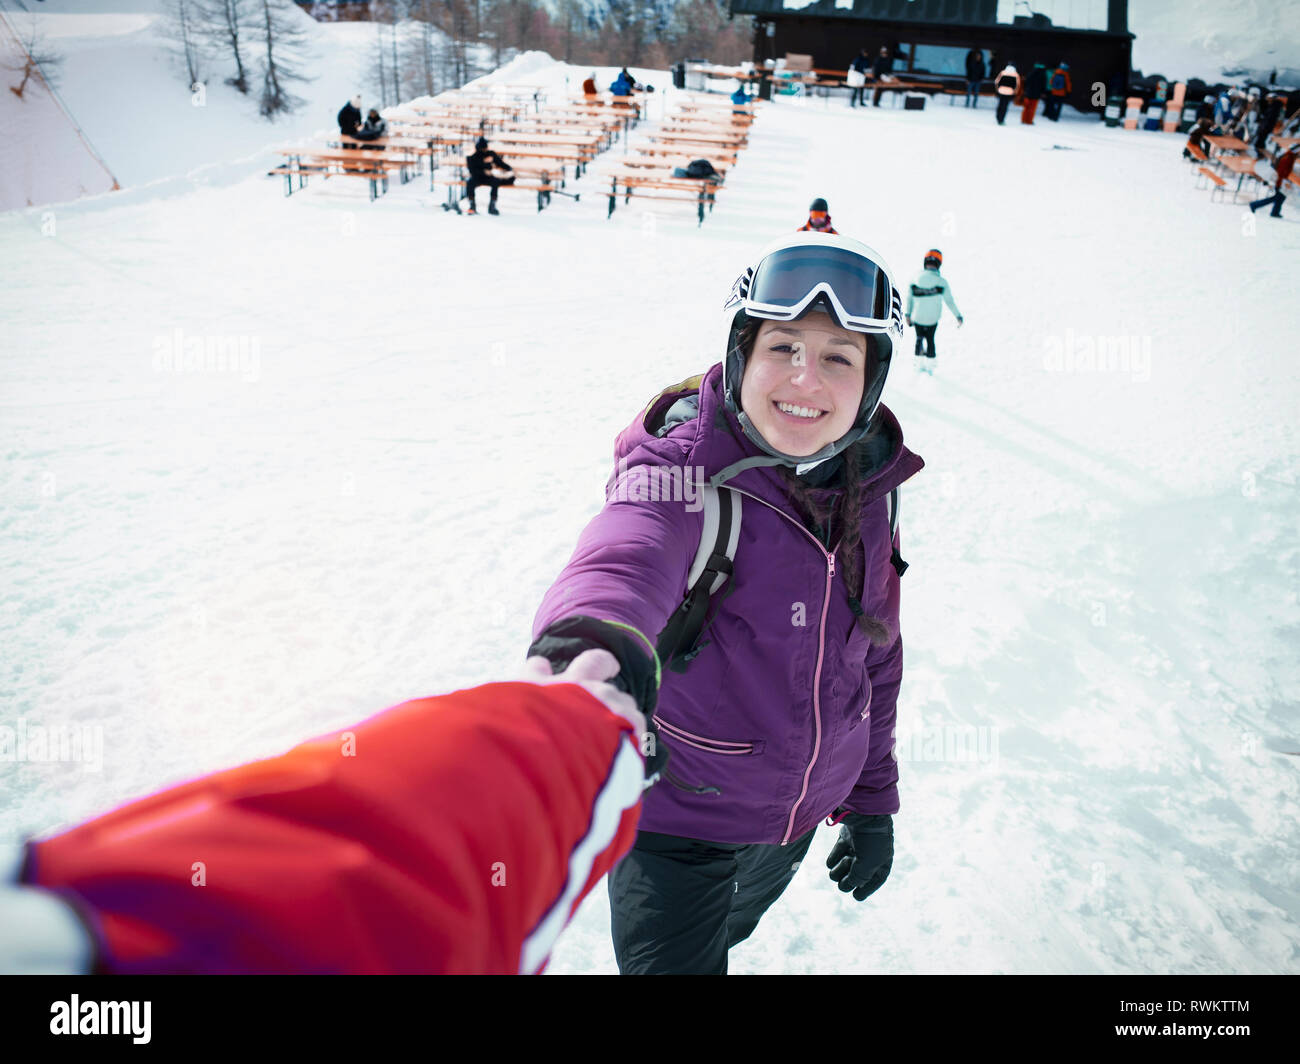 Skiing couple wearing helmet and ski goggles holding hands on ski slope,  Alpe Ciamporino, Piemonte, Italy - Stock Image